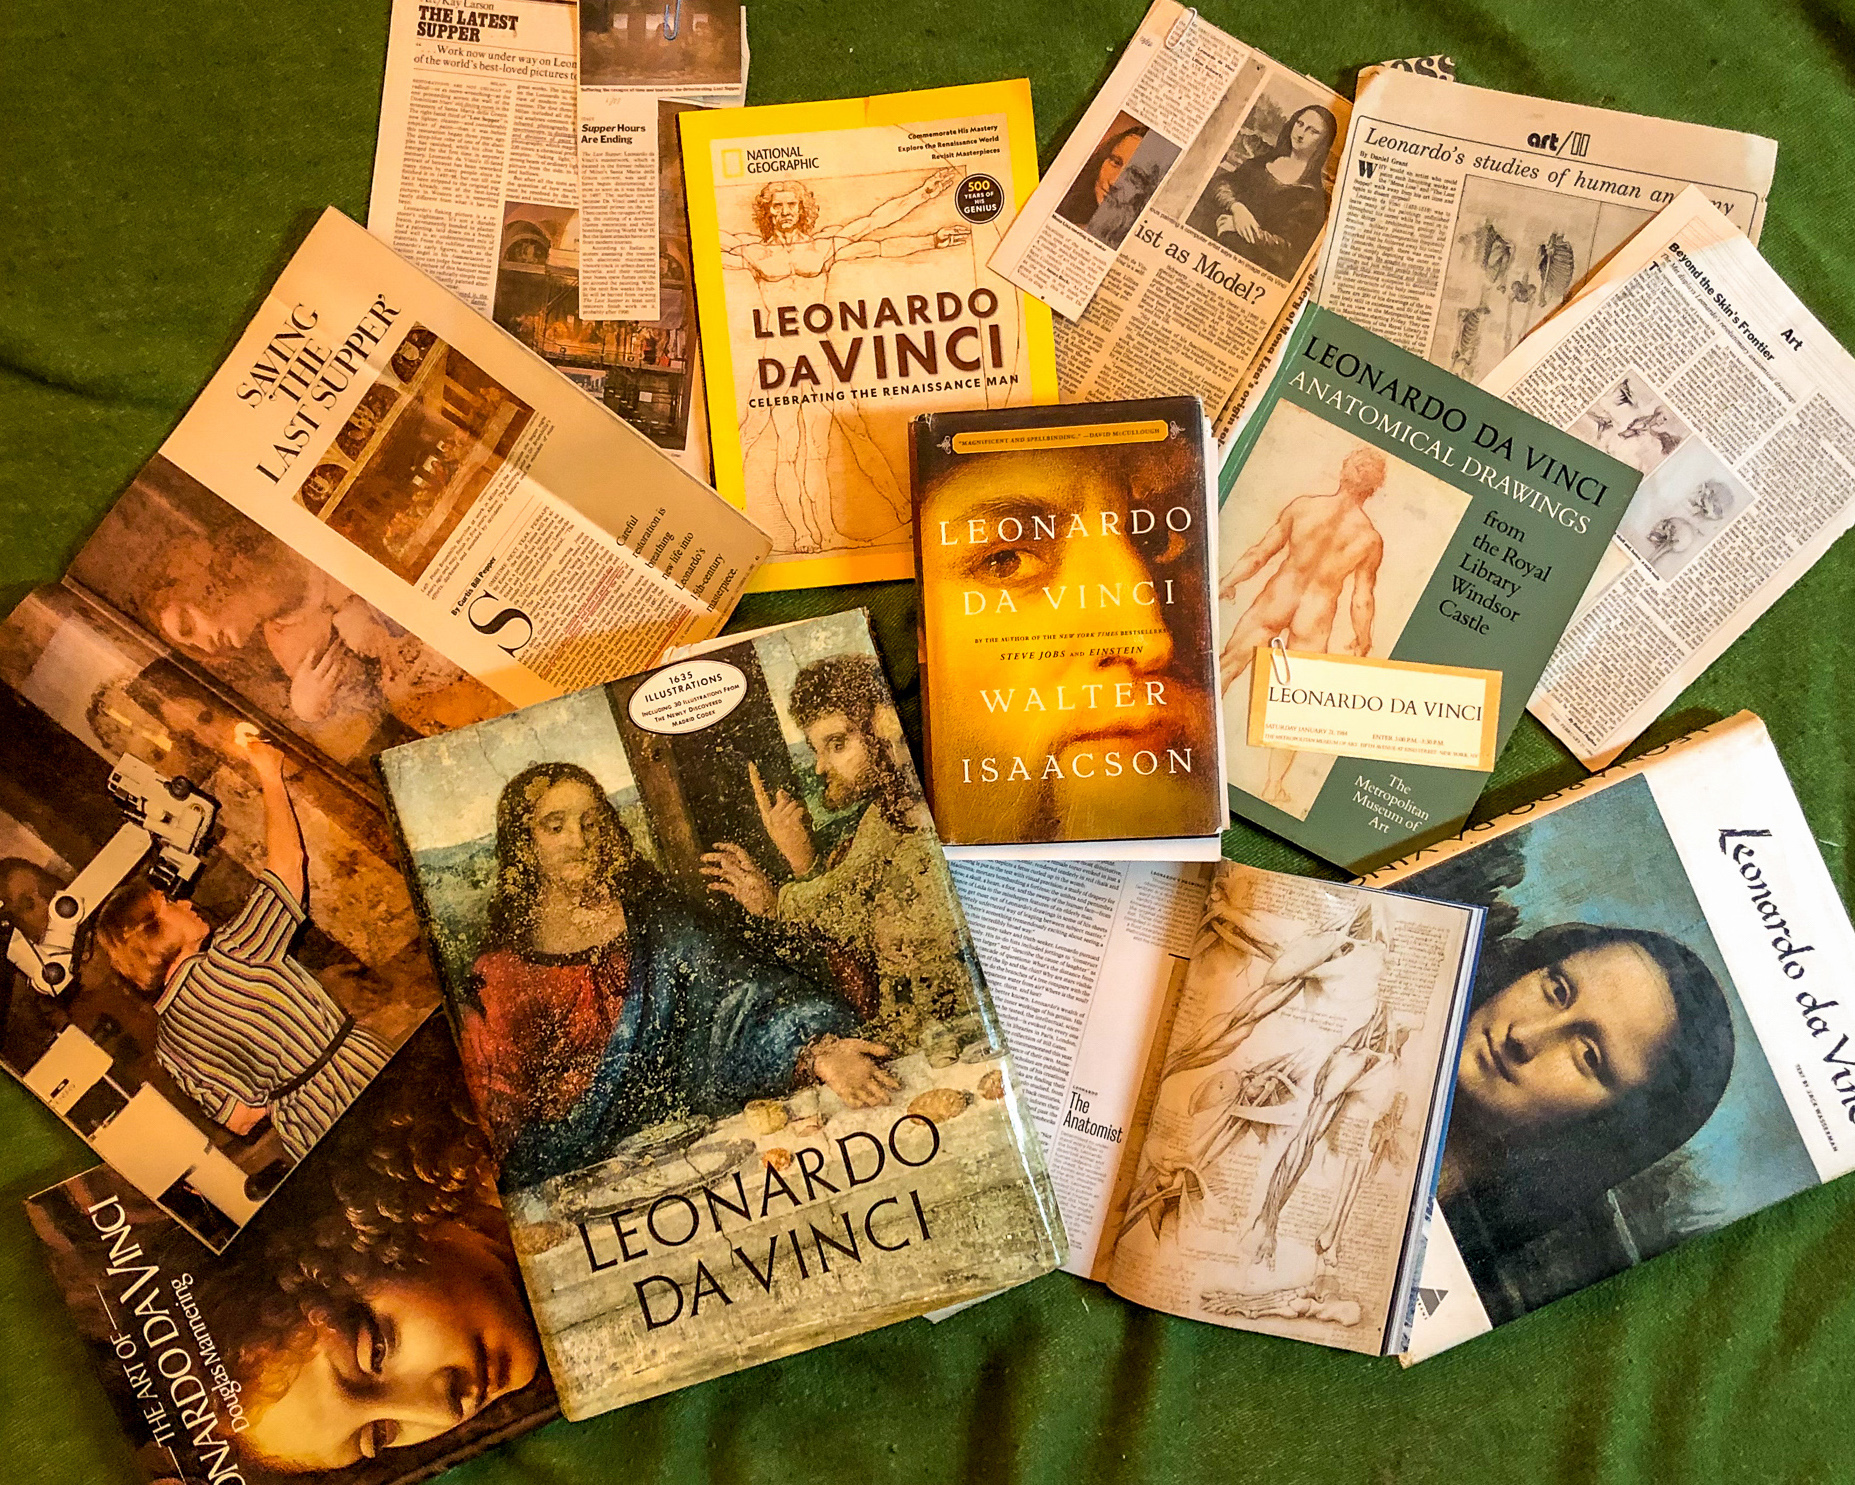 A spread of books, articles and magazines on Leonardo da Vinci that I've read since my early fascination with the Renaissance man.